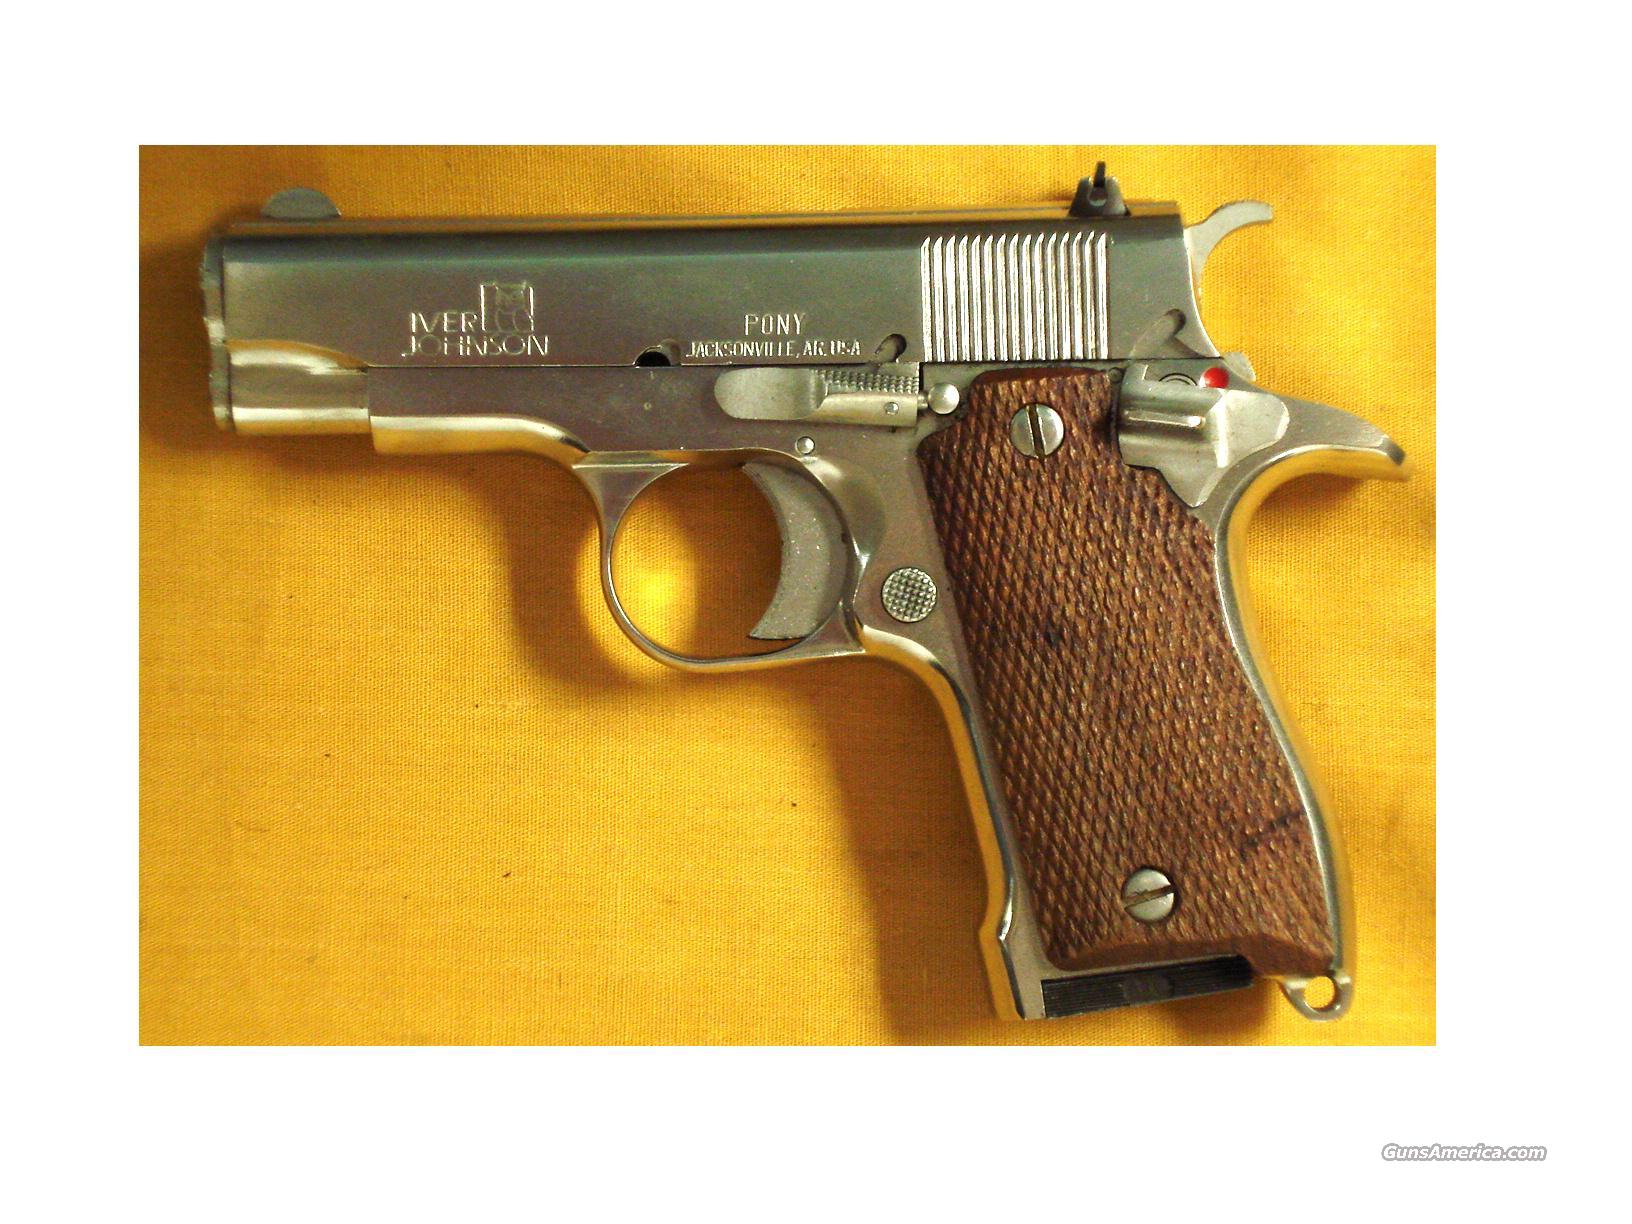 "IVER JOHNSON PONY .380 3 1/2"" BBL  Guns > Pistols > Iver Johnson Pistols"